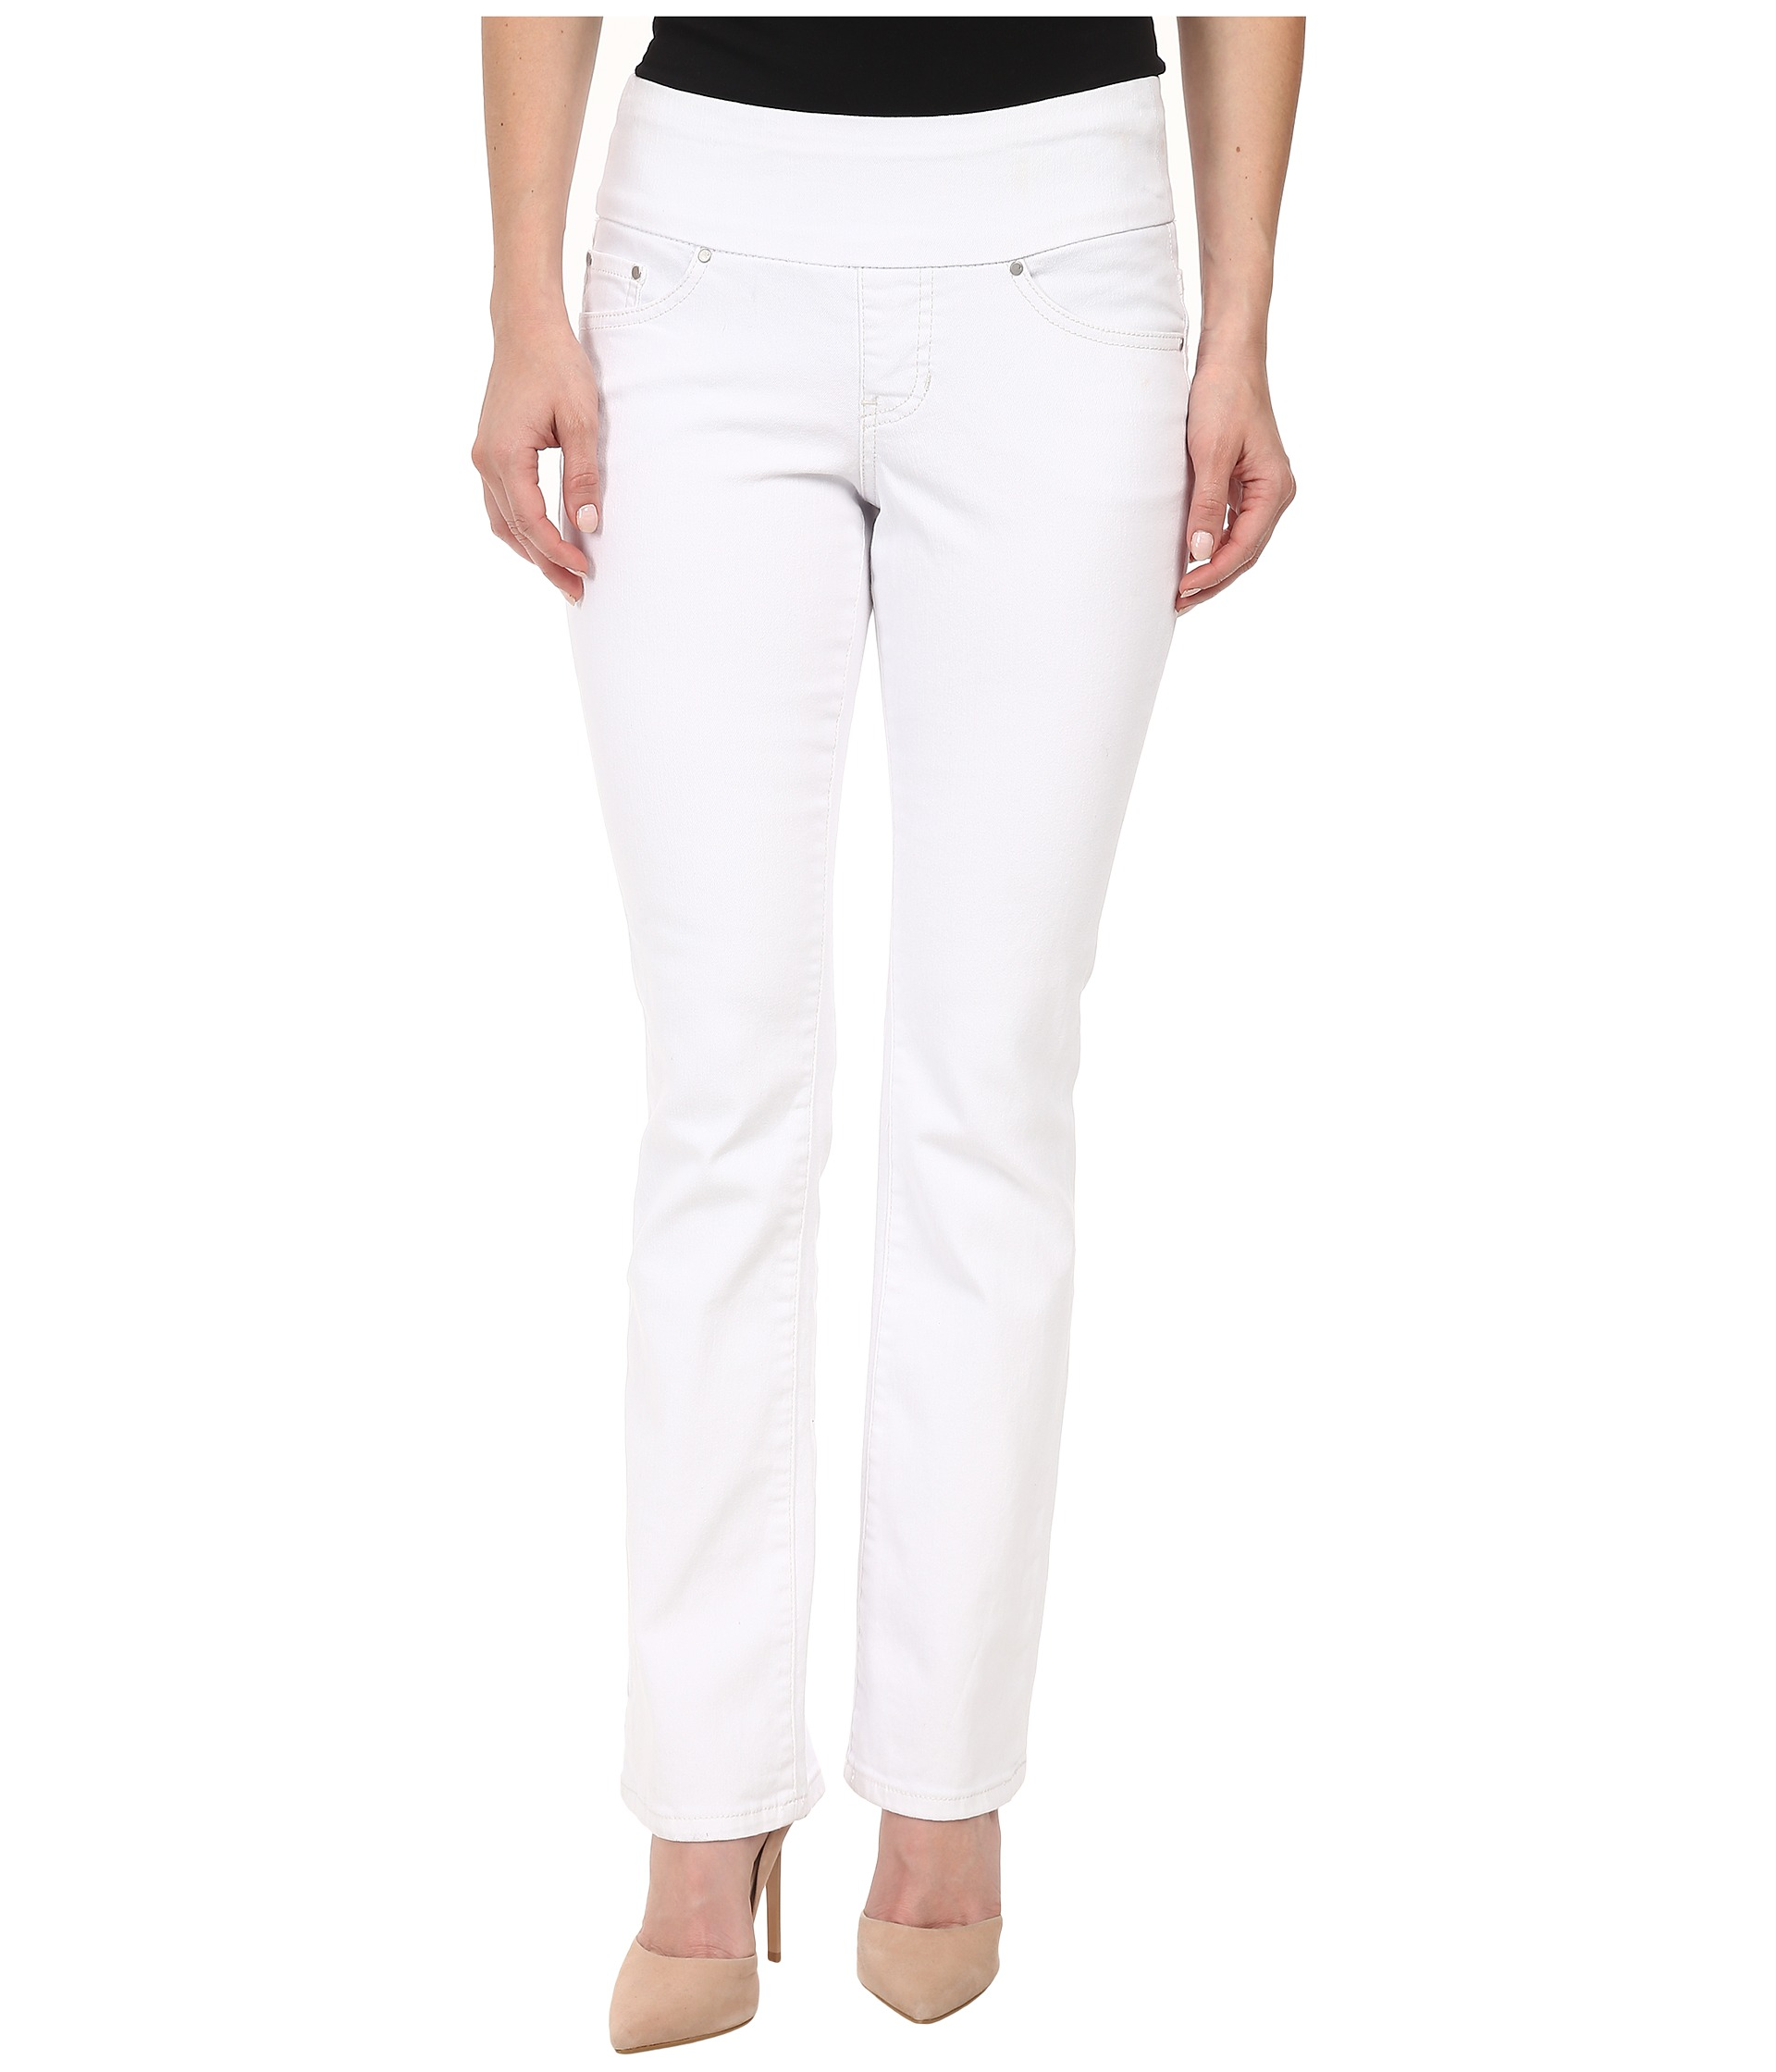 Get the best deals on white jeans petite and save up to 70% off at Poshmark now! Whatever you're shopping for, we've got it.